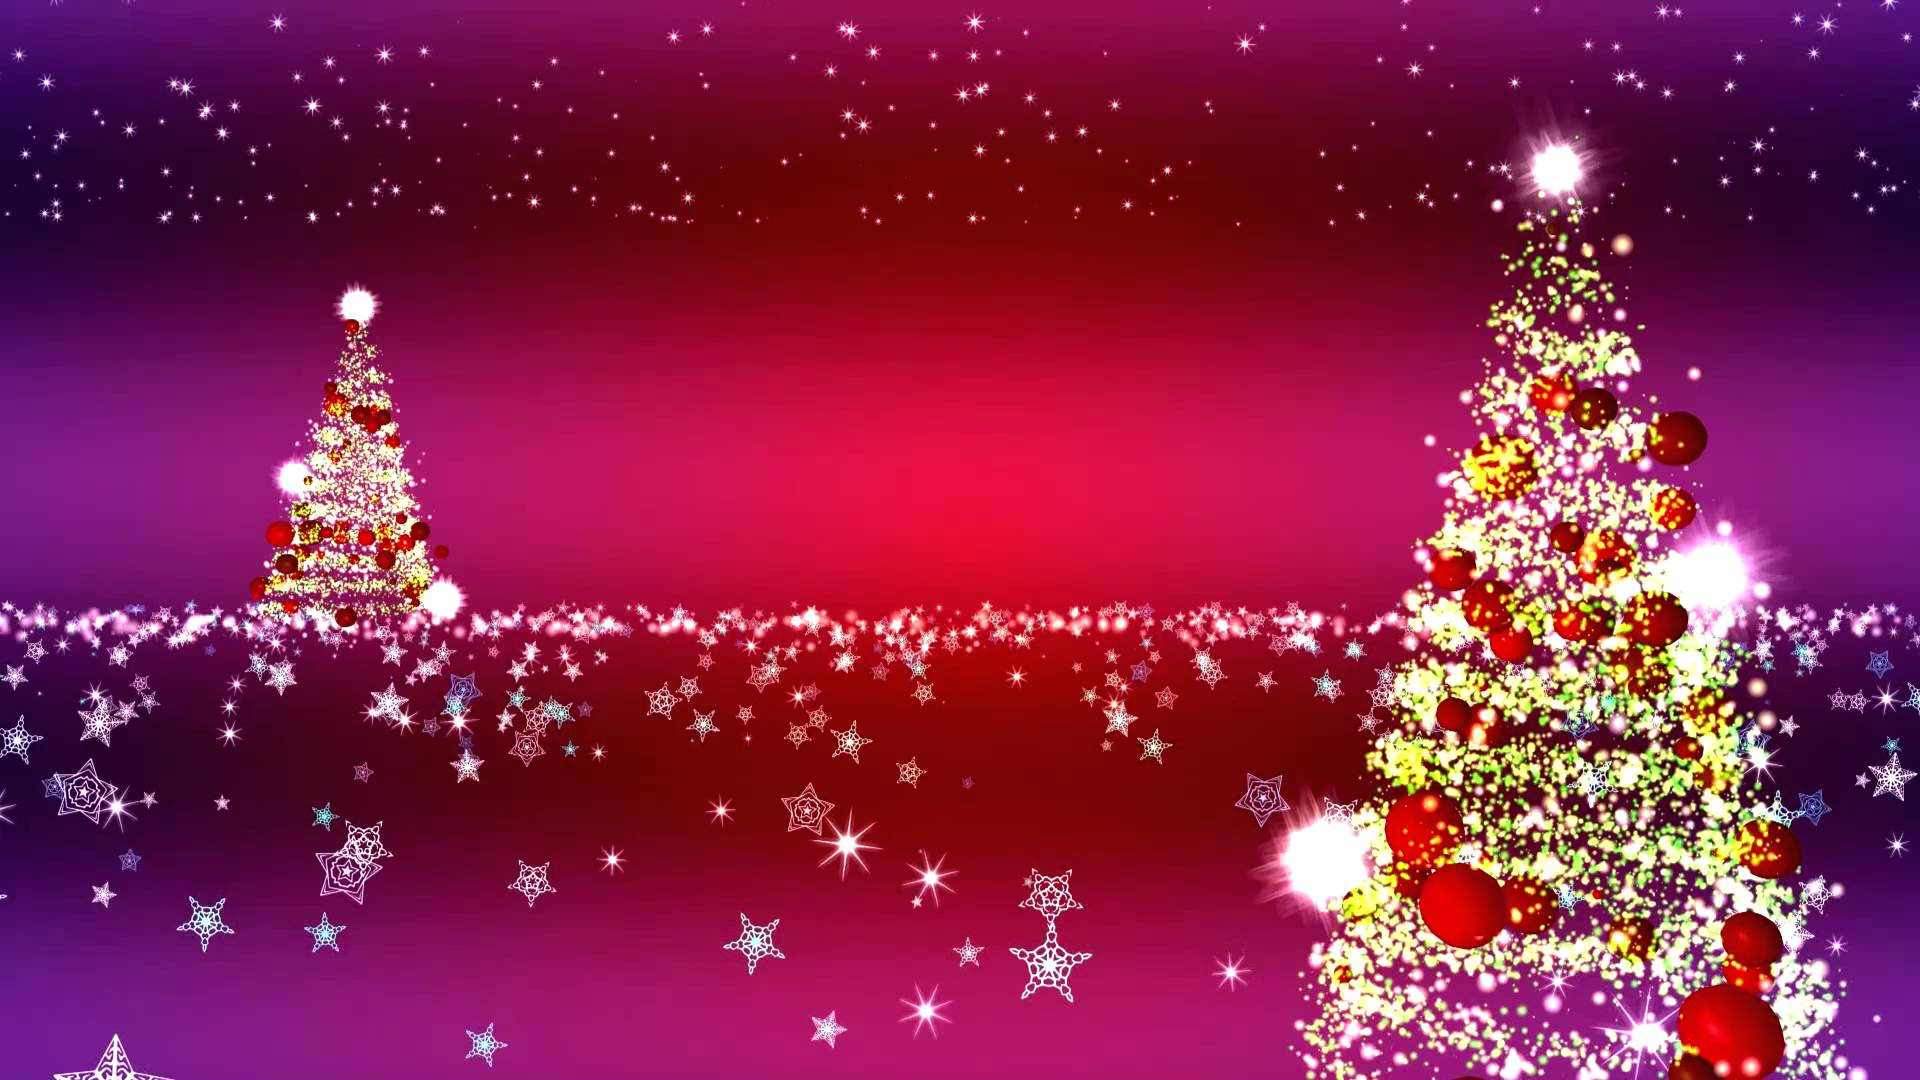 2015 Christmas background hd   wallpapers images photos 1920x1080